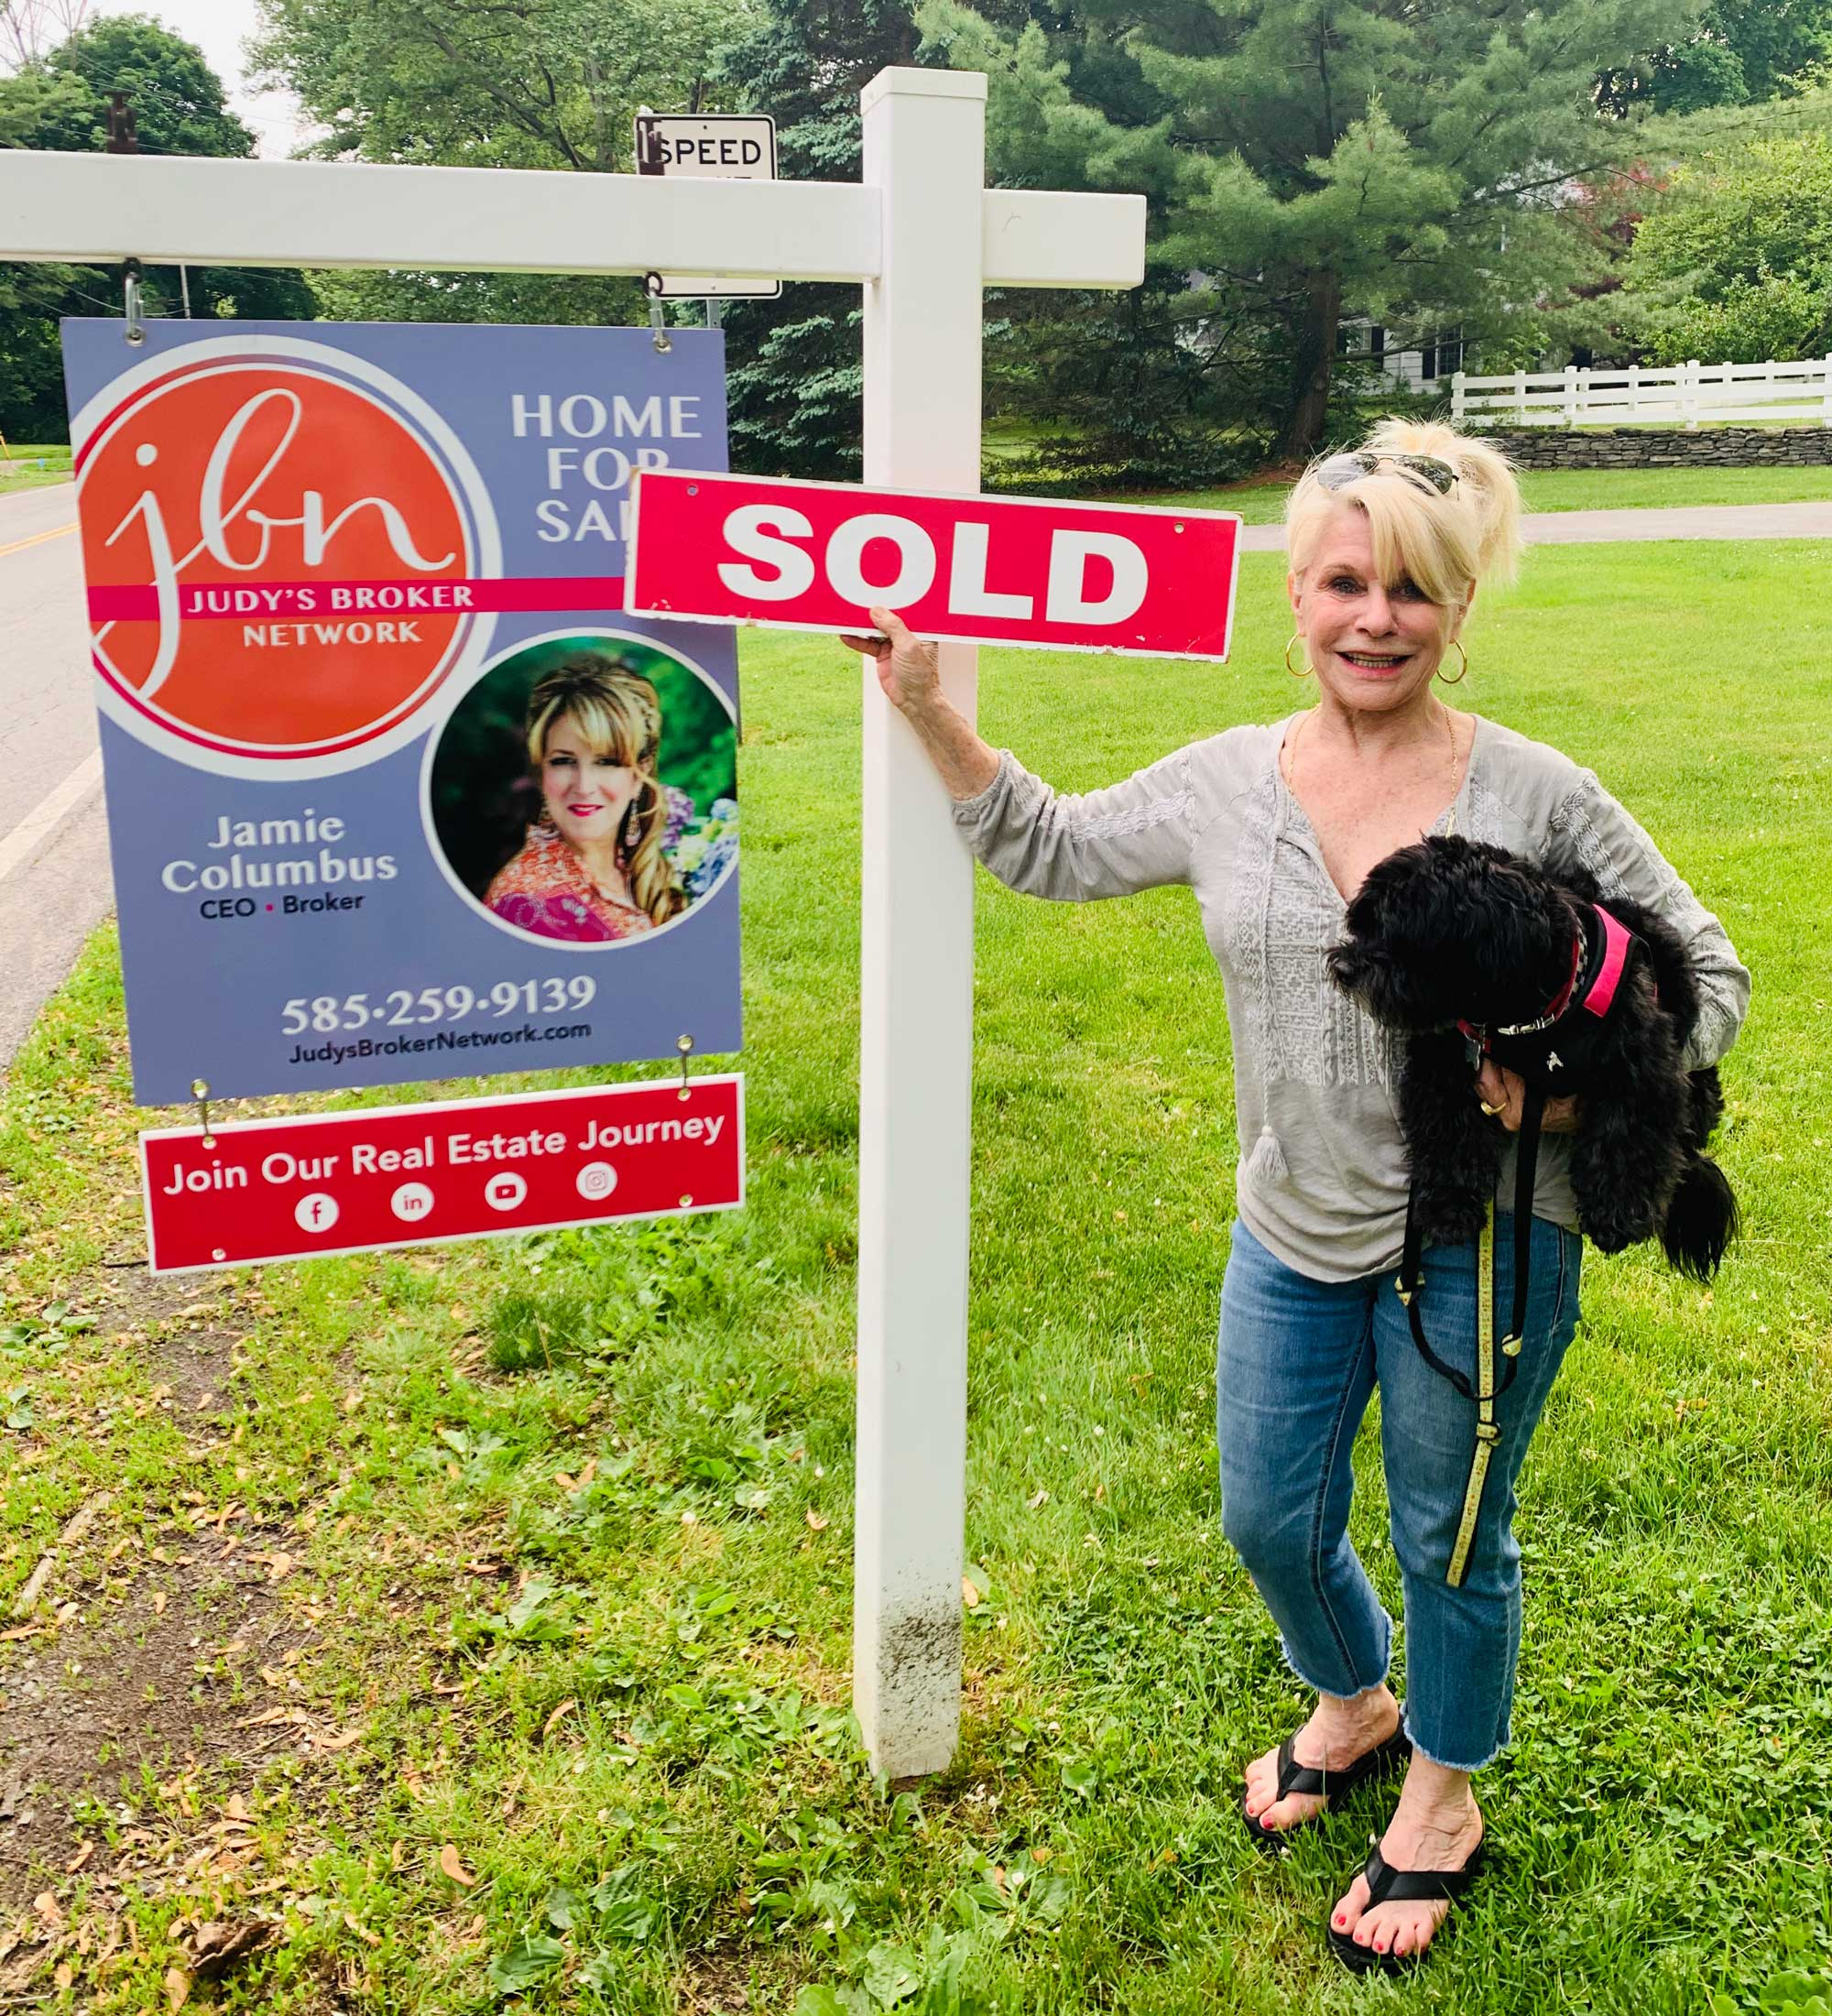 photo of homeowner with Sold sign and Judy's Broker Network sign in front of home